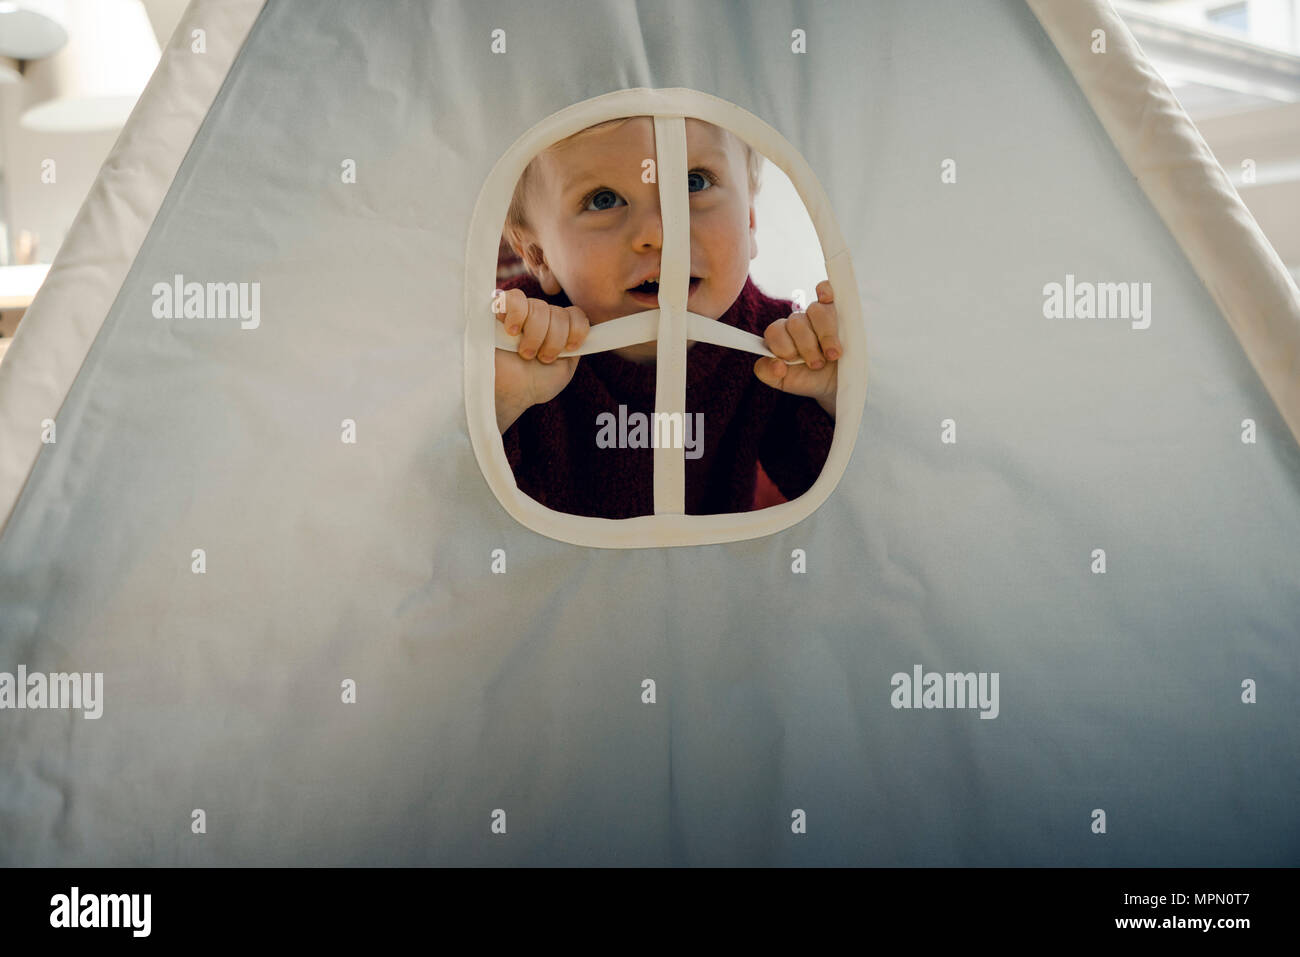 Little boy playing in tent, looking through window, laughing - Stock Image